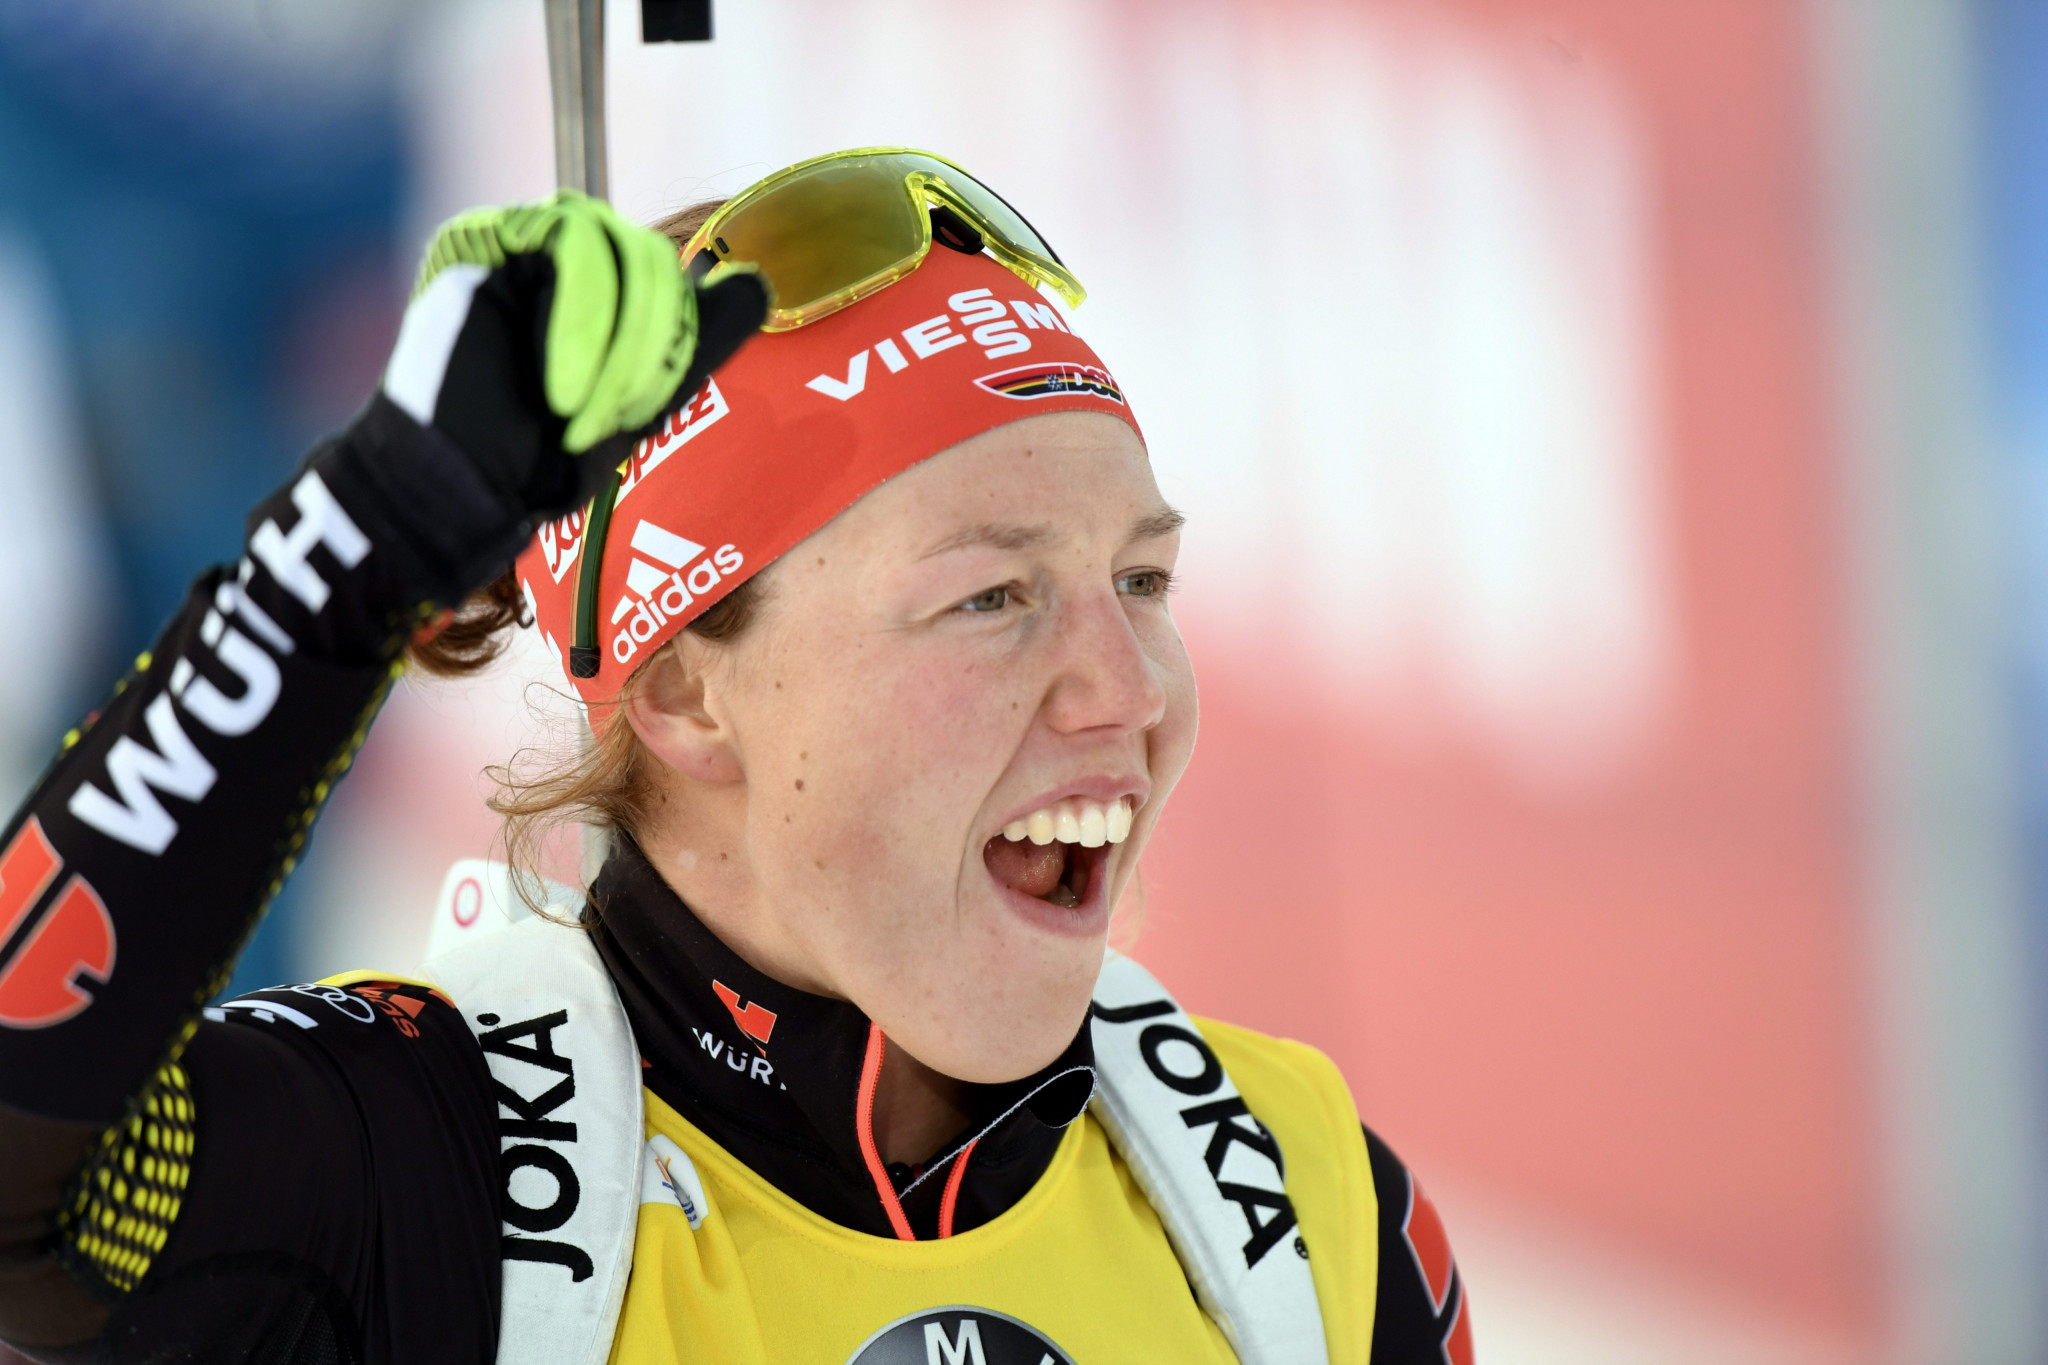 Laura Dahlmeier of Germany is predicted to lead the individual medal count at the 2018 Winter Olympics by data analysts ©Getty Images